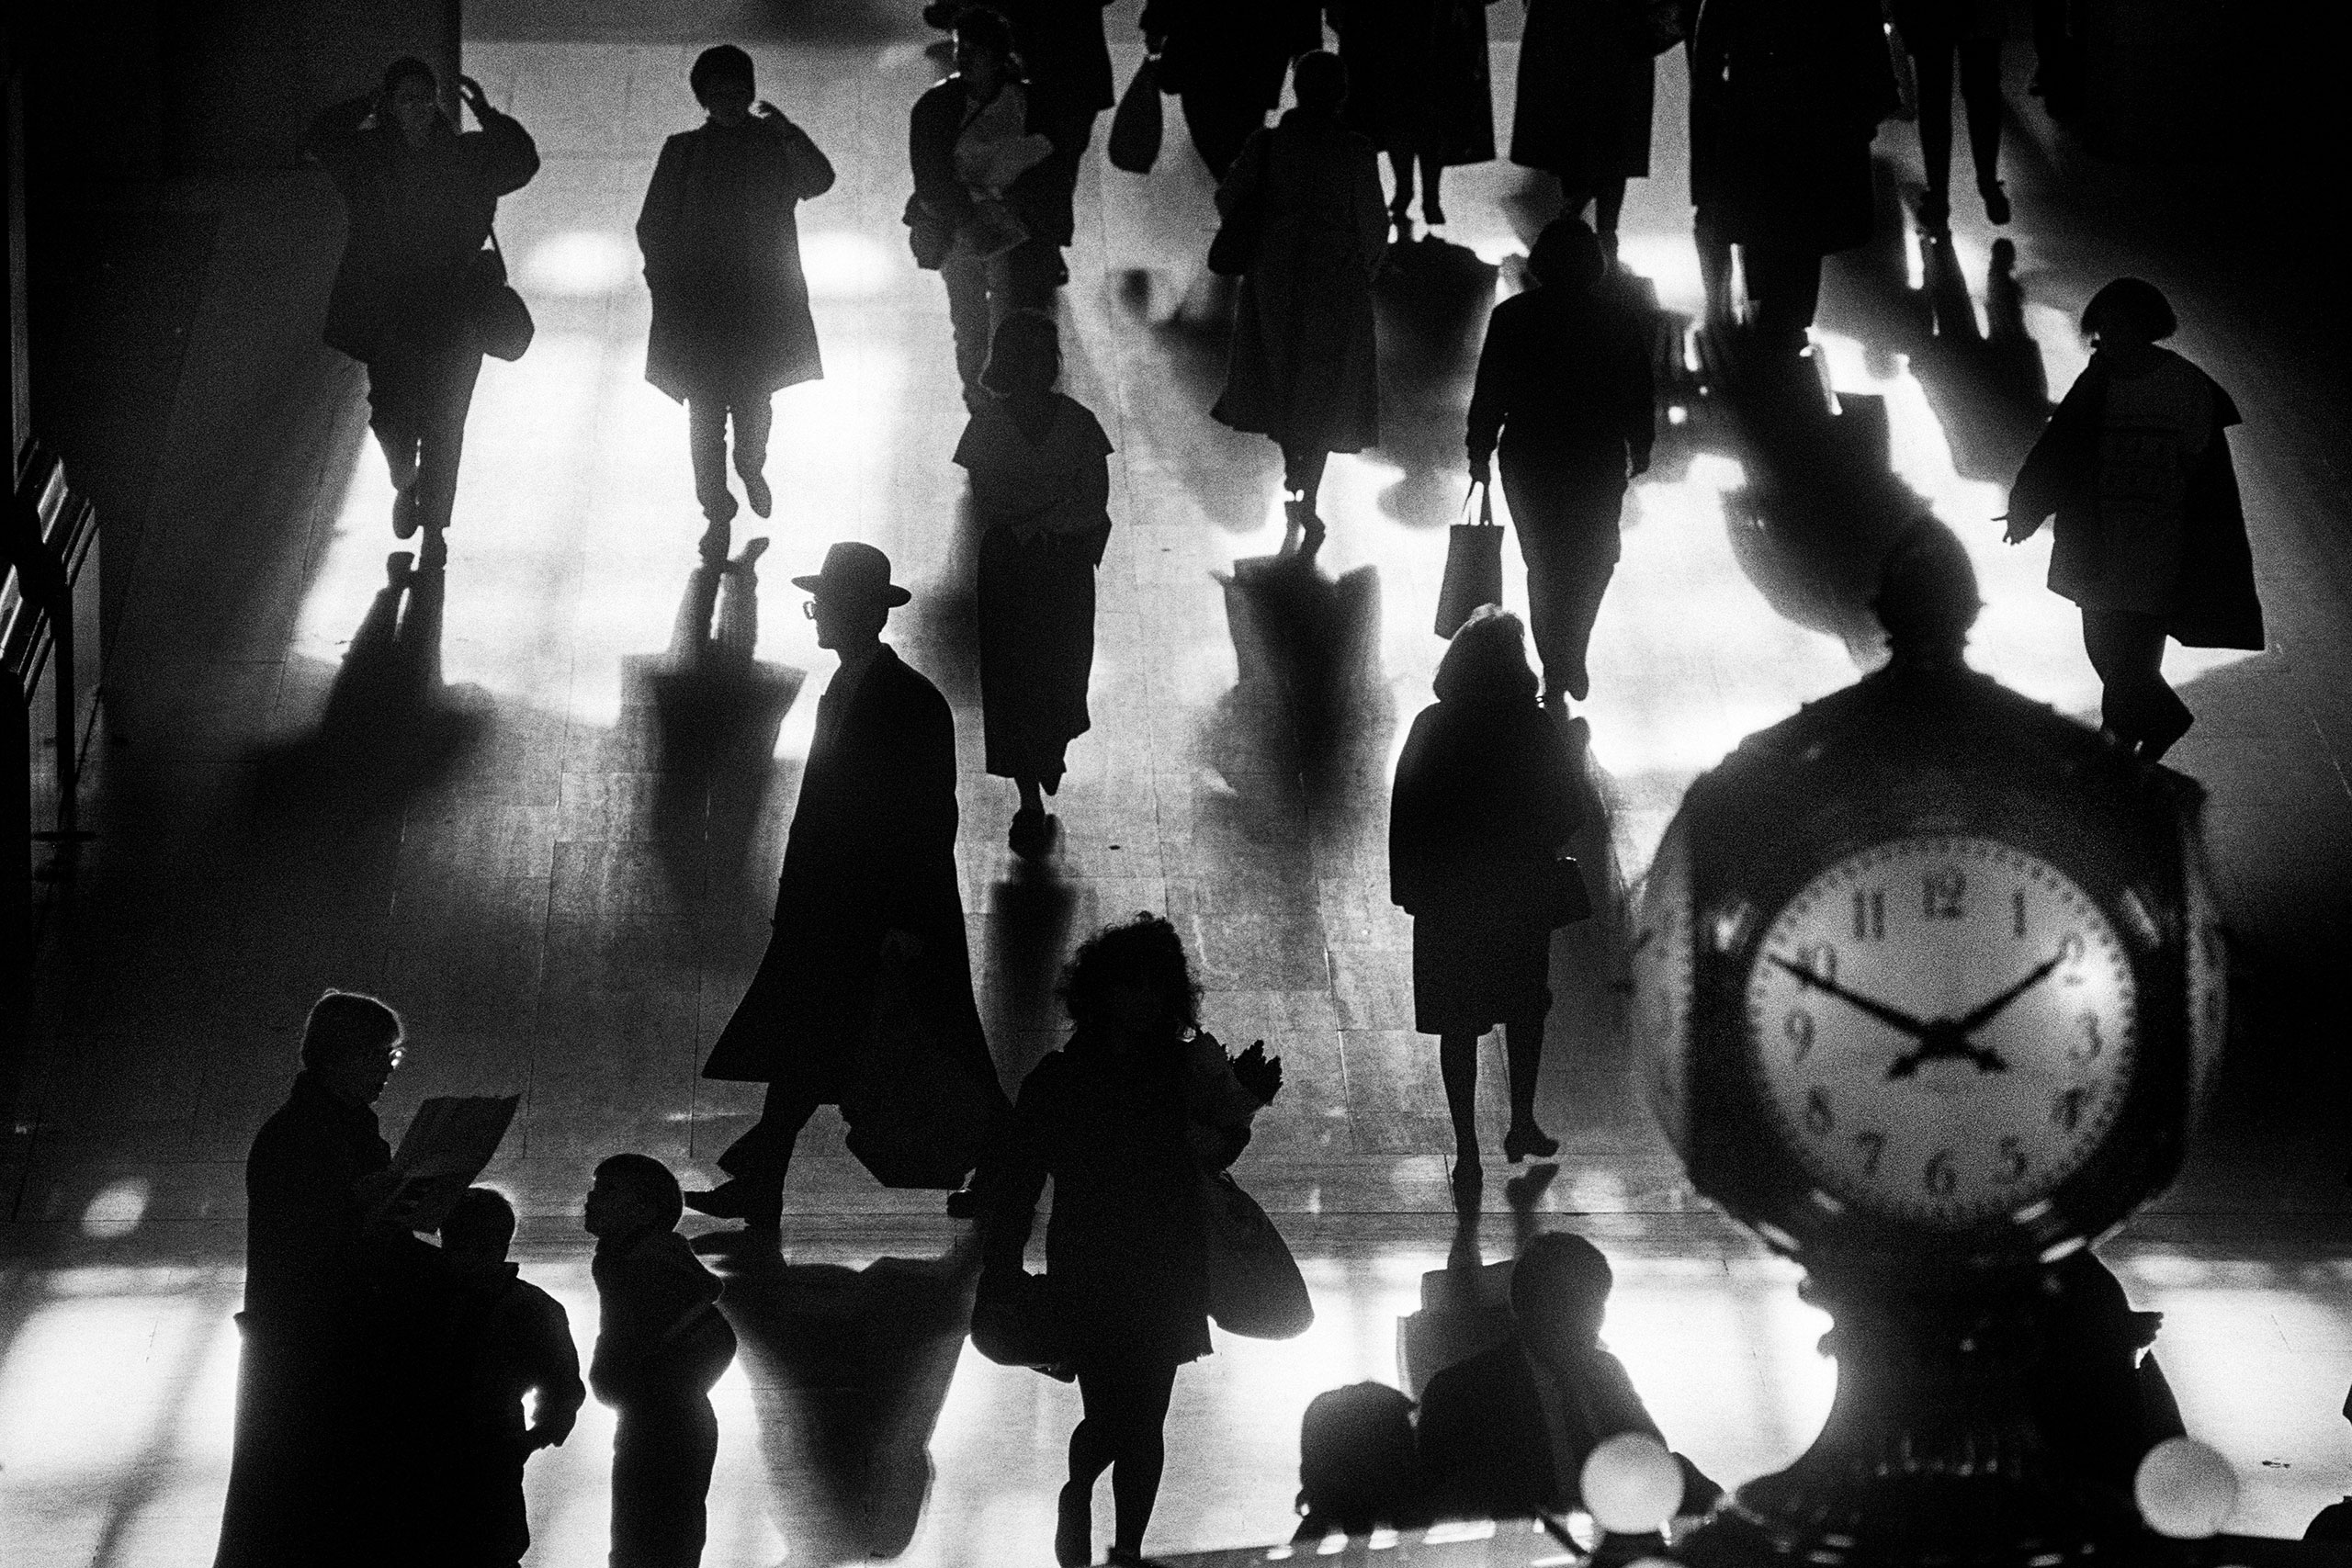 Grand Central Terminal, NYC, 1990